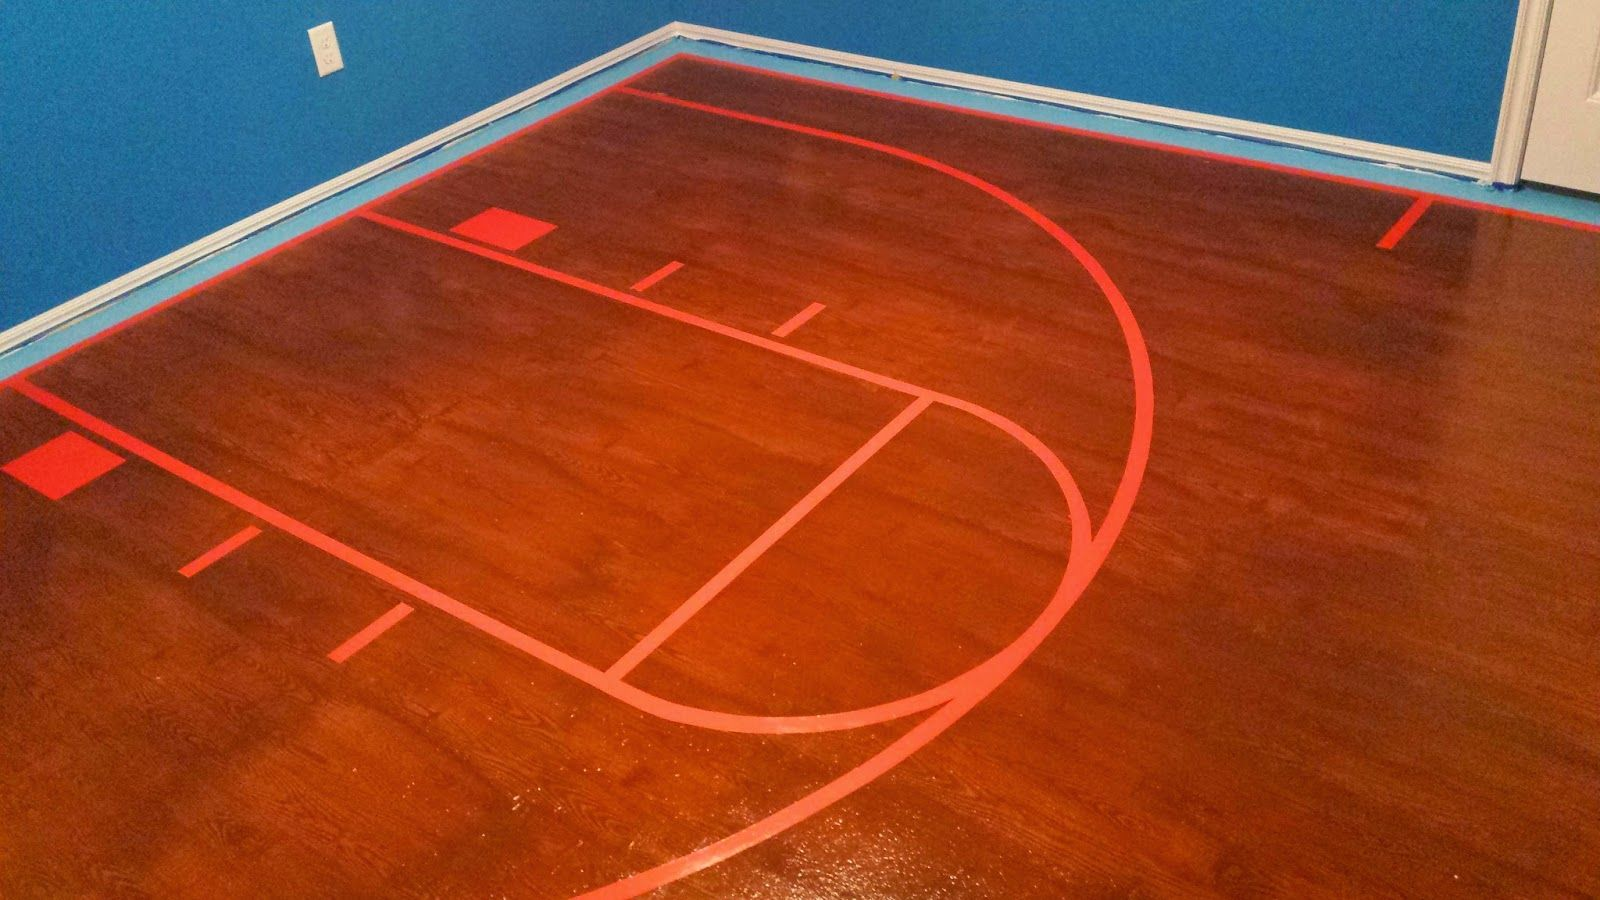 35 Plywood Floors Basketball Court Ideas Painted Plywood Floors Plywood Flooring Plywood